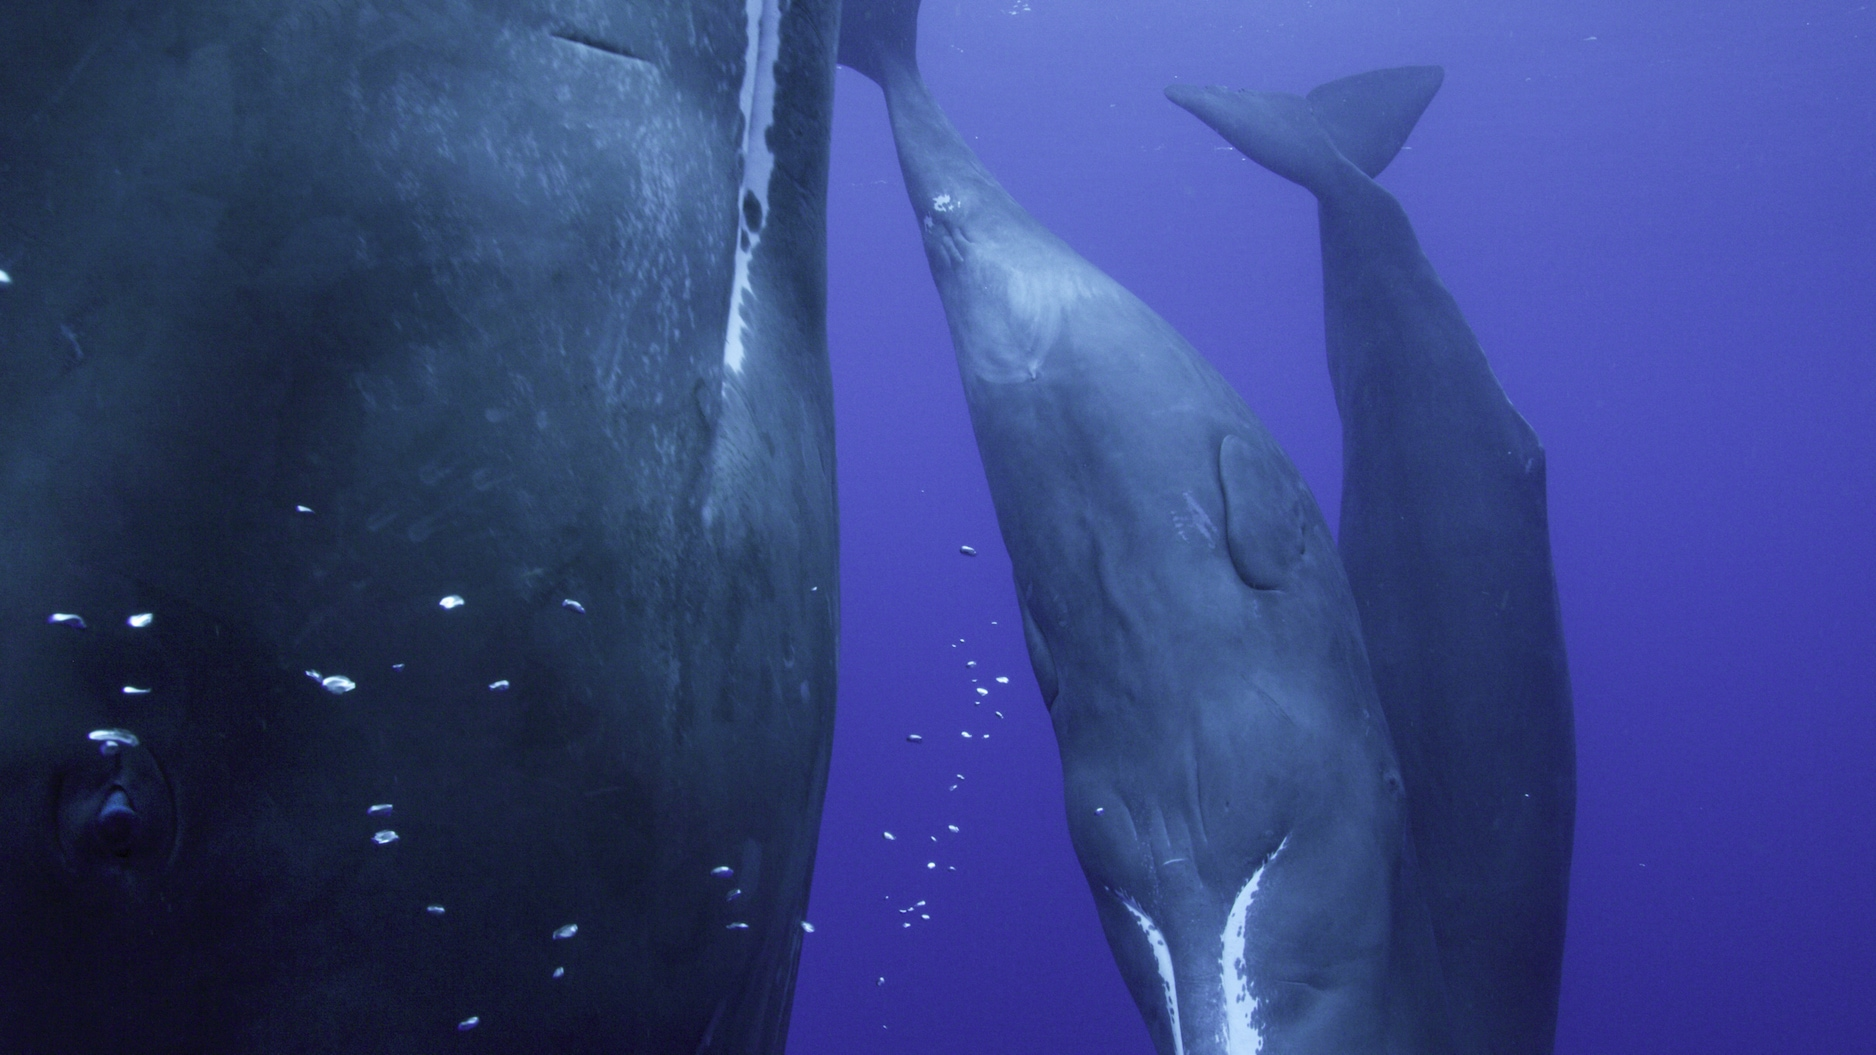 Sperm whales rest vertically, pausing every 10-15 minutes to breathe at the surface. They may rely on sleep less than any other mammal on the planet. (National Geographic for Disney+/Luis Lamar)